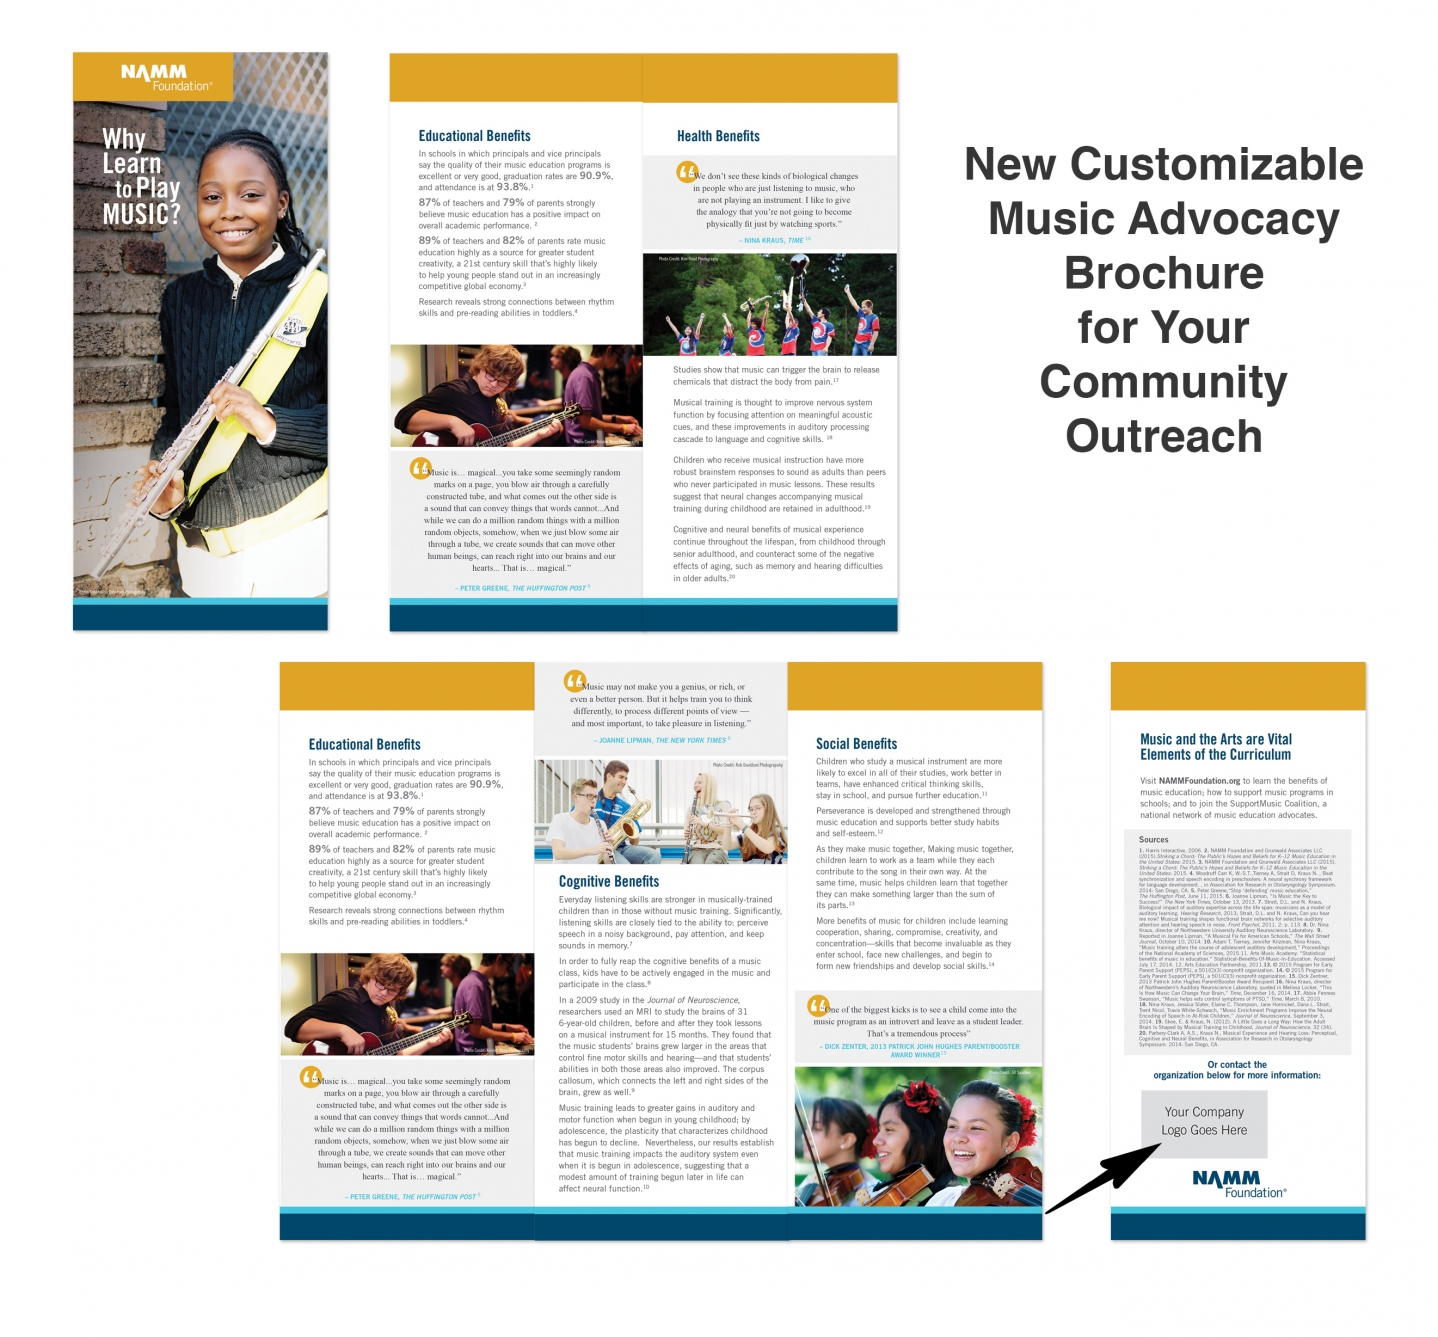 Why Learn to Play Music? advocacy brochure   NAMM Foundation